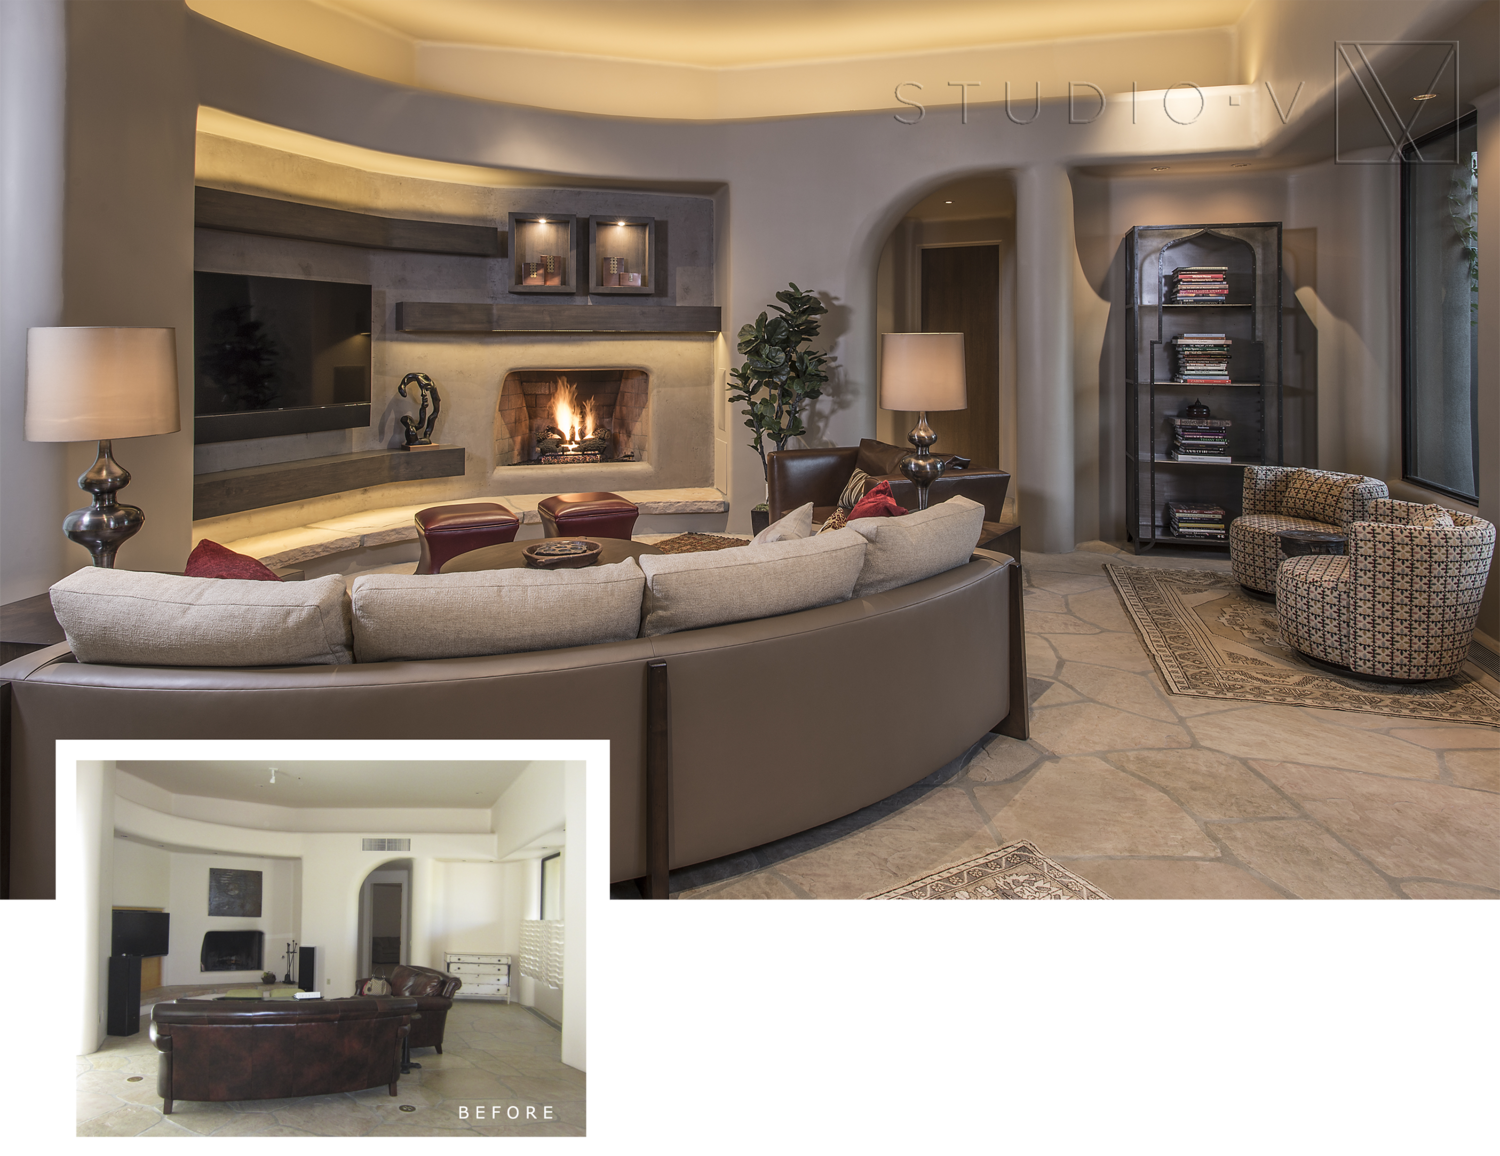 01Great Room with TV Studio V Interiors Scottsdale AZ Arizona